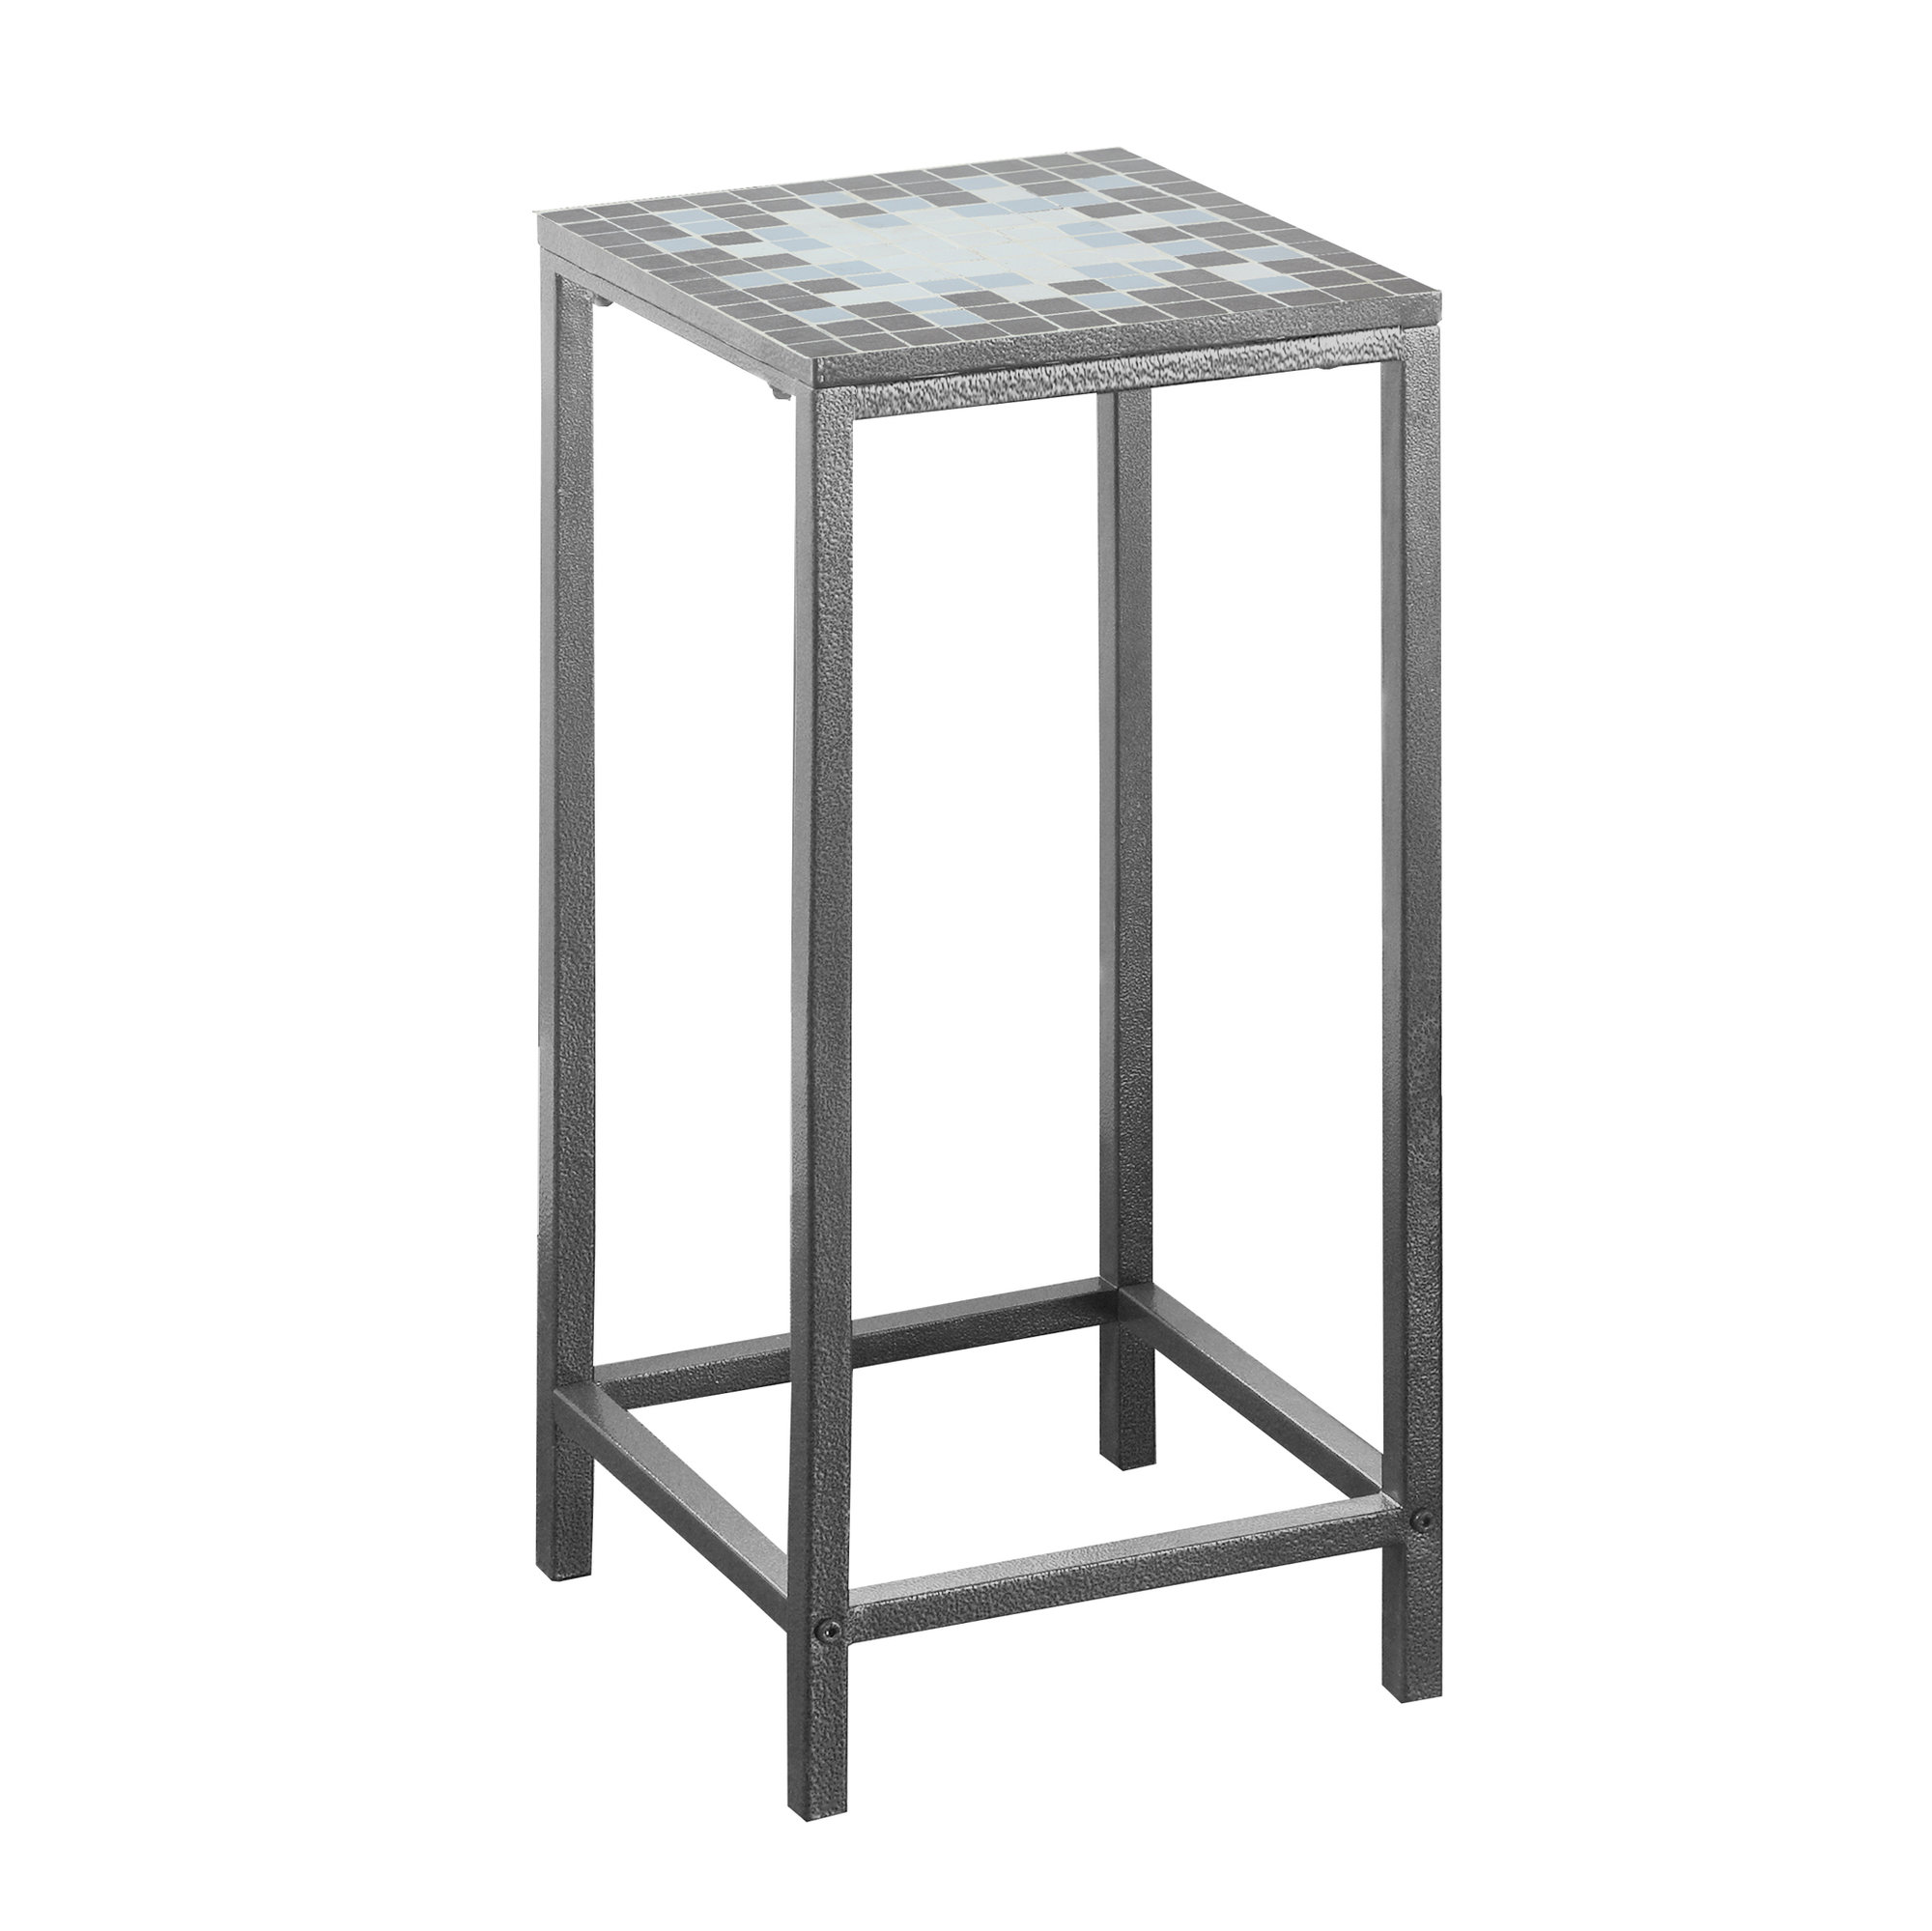 "12"" Square Accent Table with Hammered Silver Metal Frame And Grey/Blue Mosaic Tile Top"